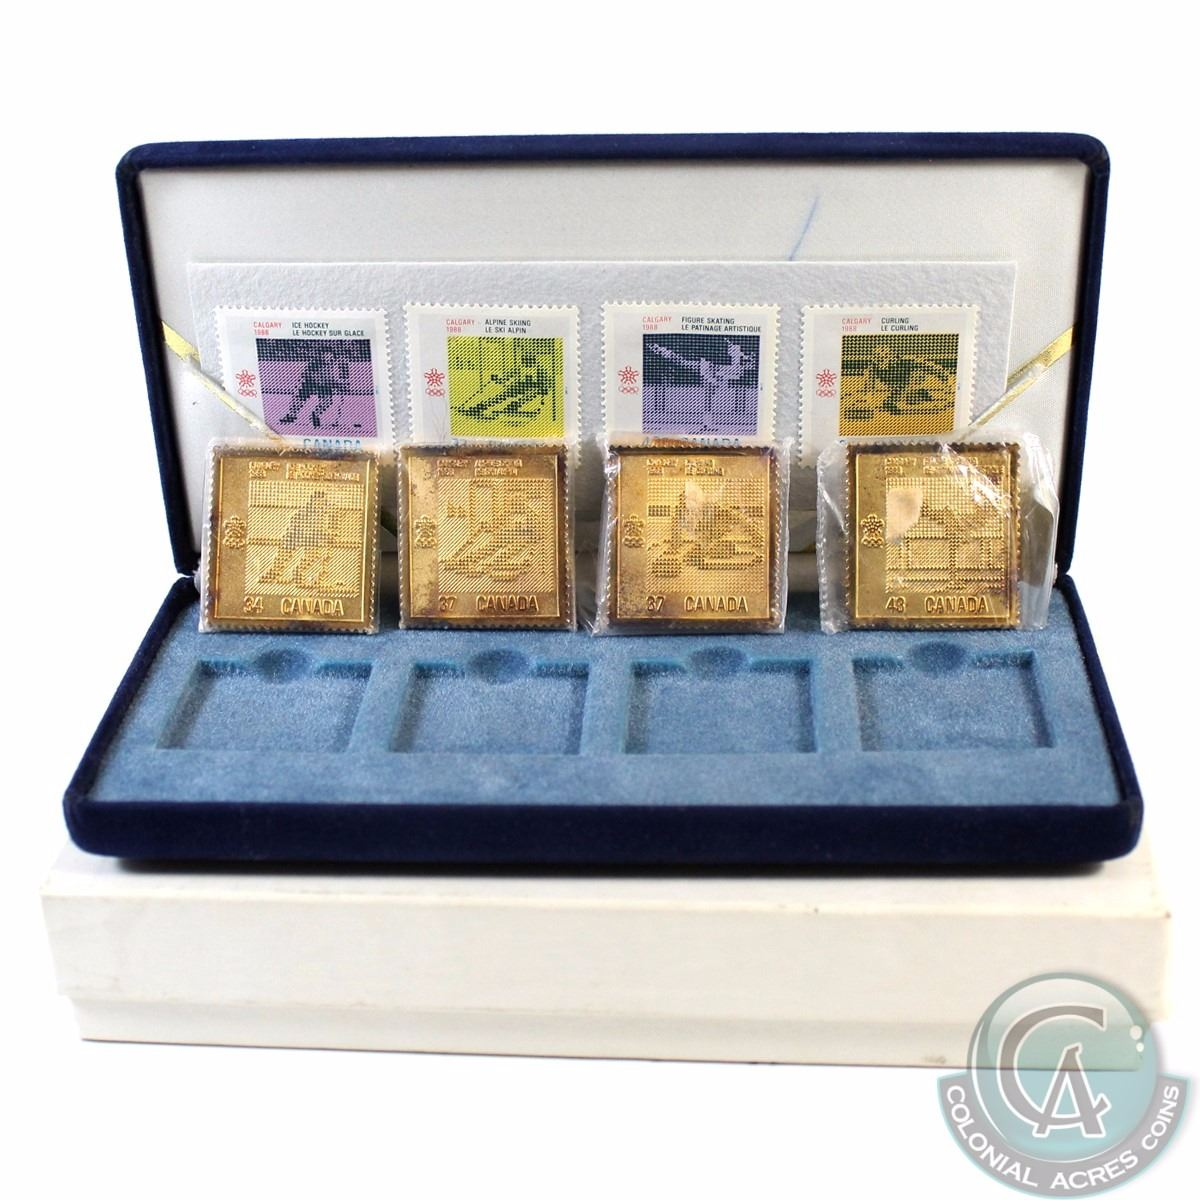 1988 Calgary Olympics gold plated Sterling Silver Stamp Replica Set ...